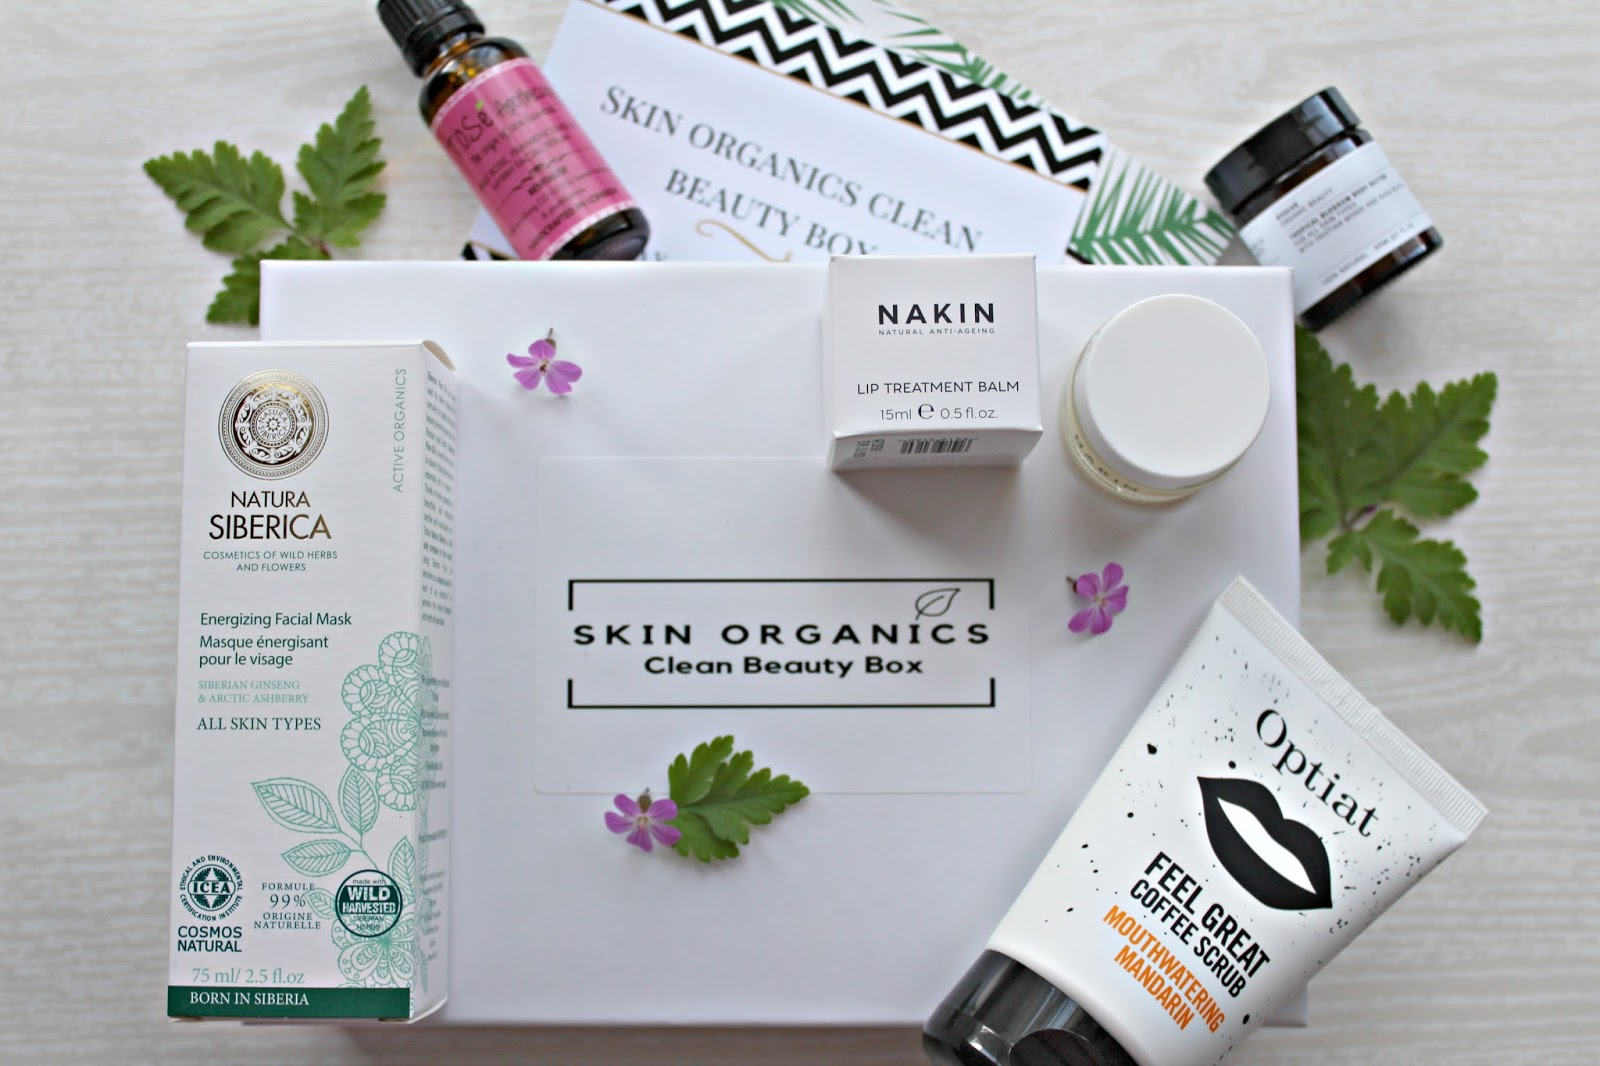 New in: Skin Organics beauty box